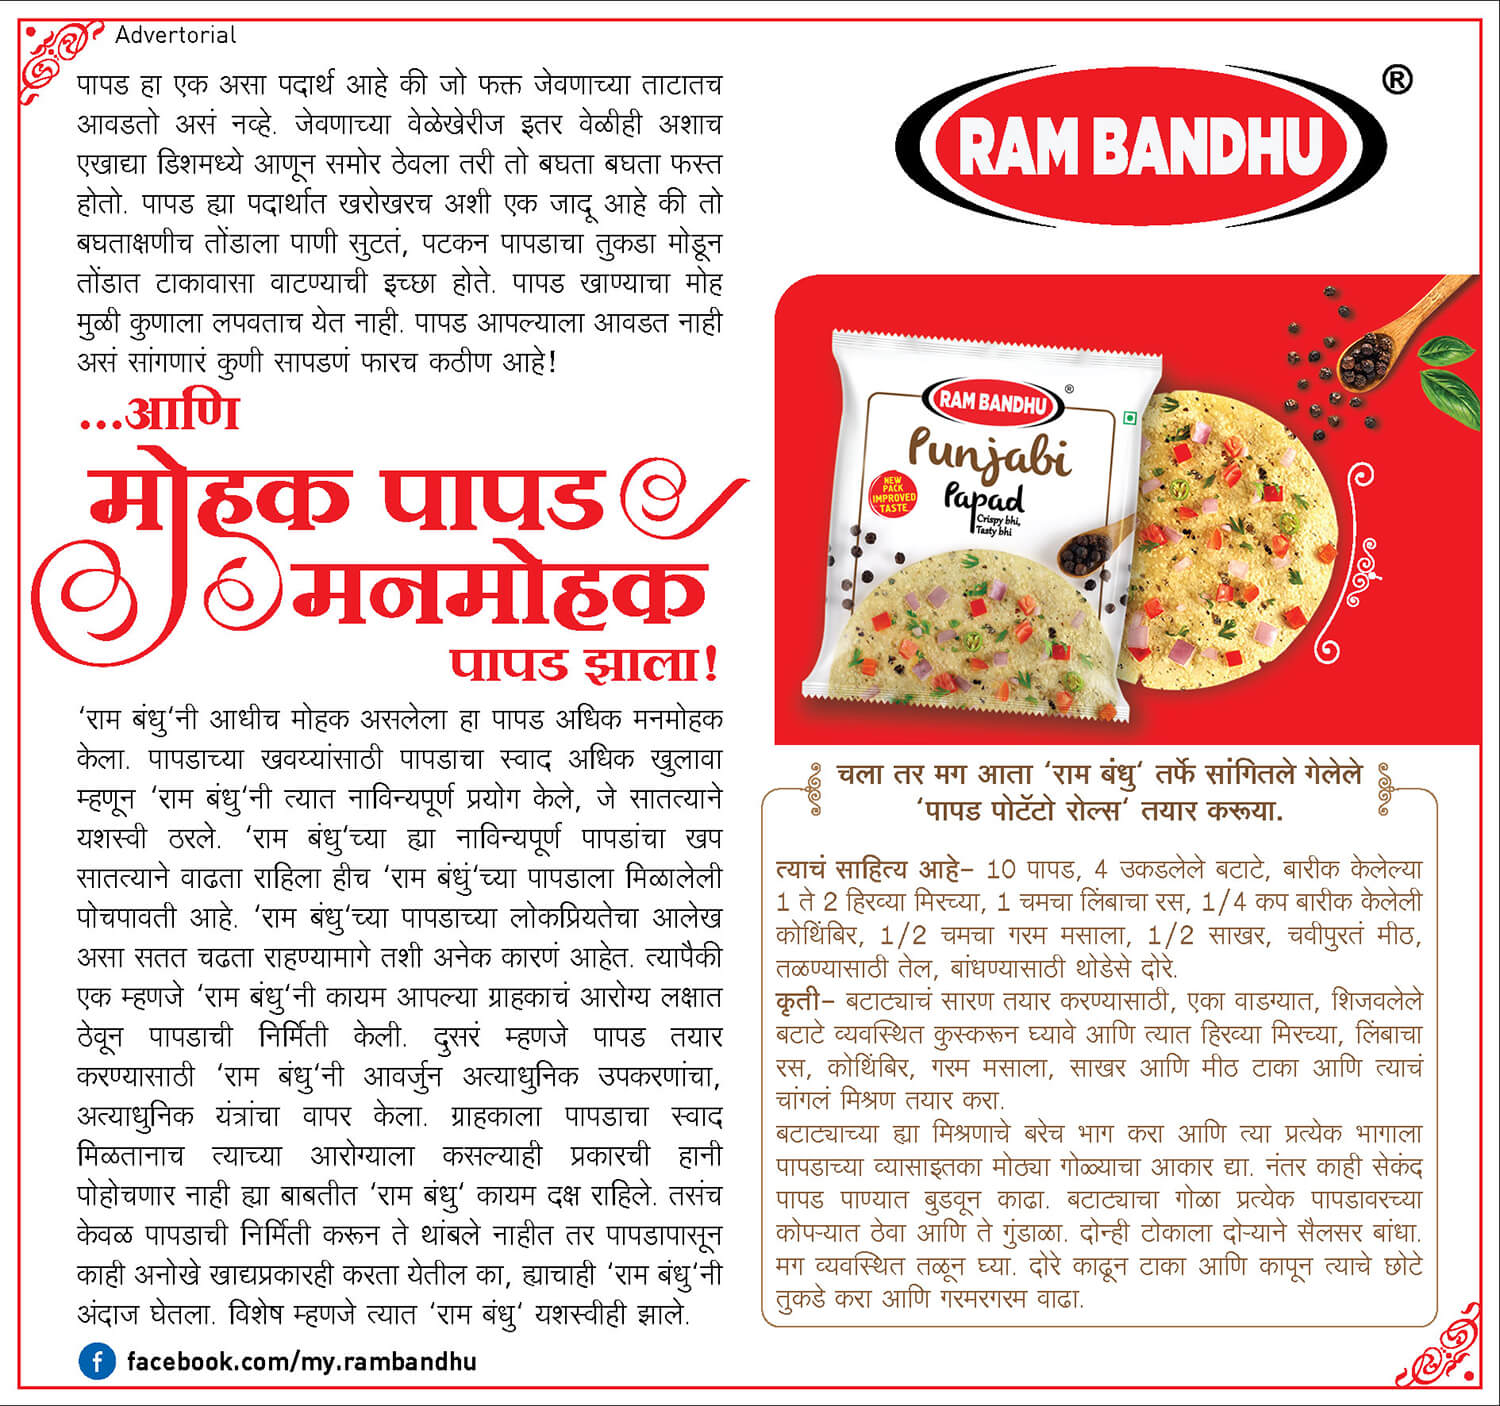 RB MARATHI Advertorial-16 x 15 cms-02